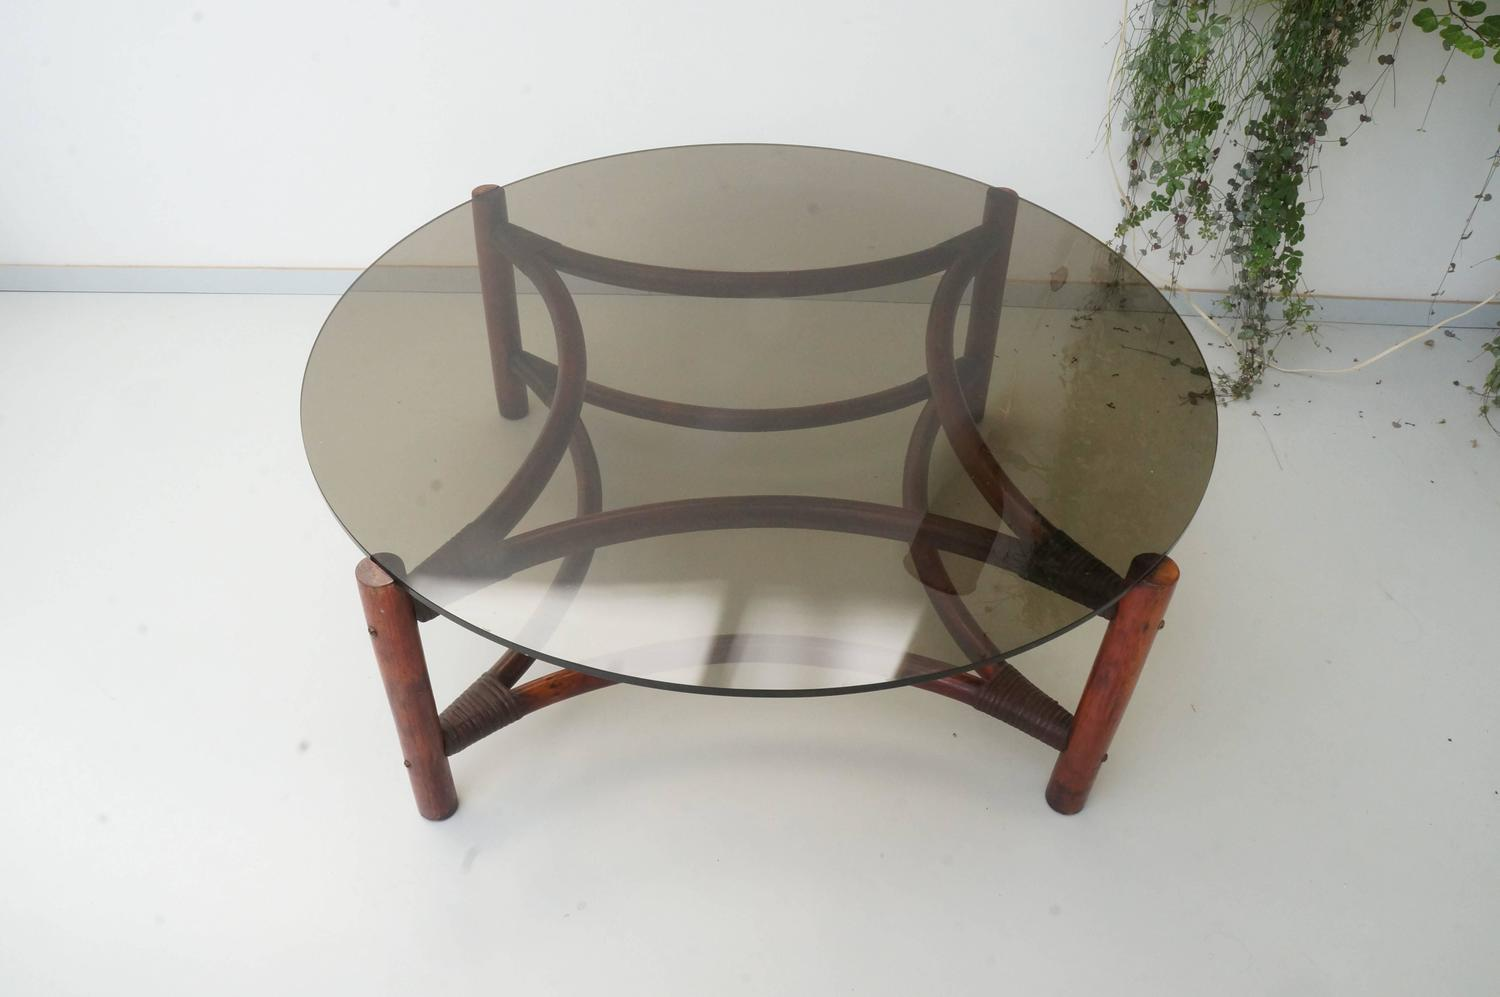 big round bamboo chair beach umbrella for vintage mid century rattan smoked glass large